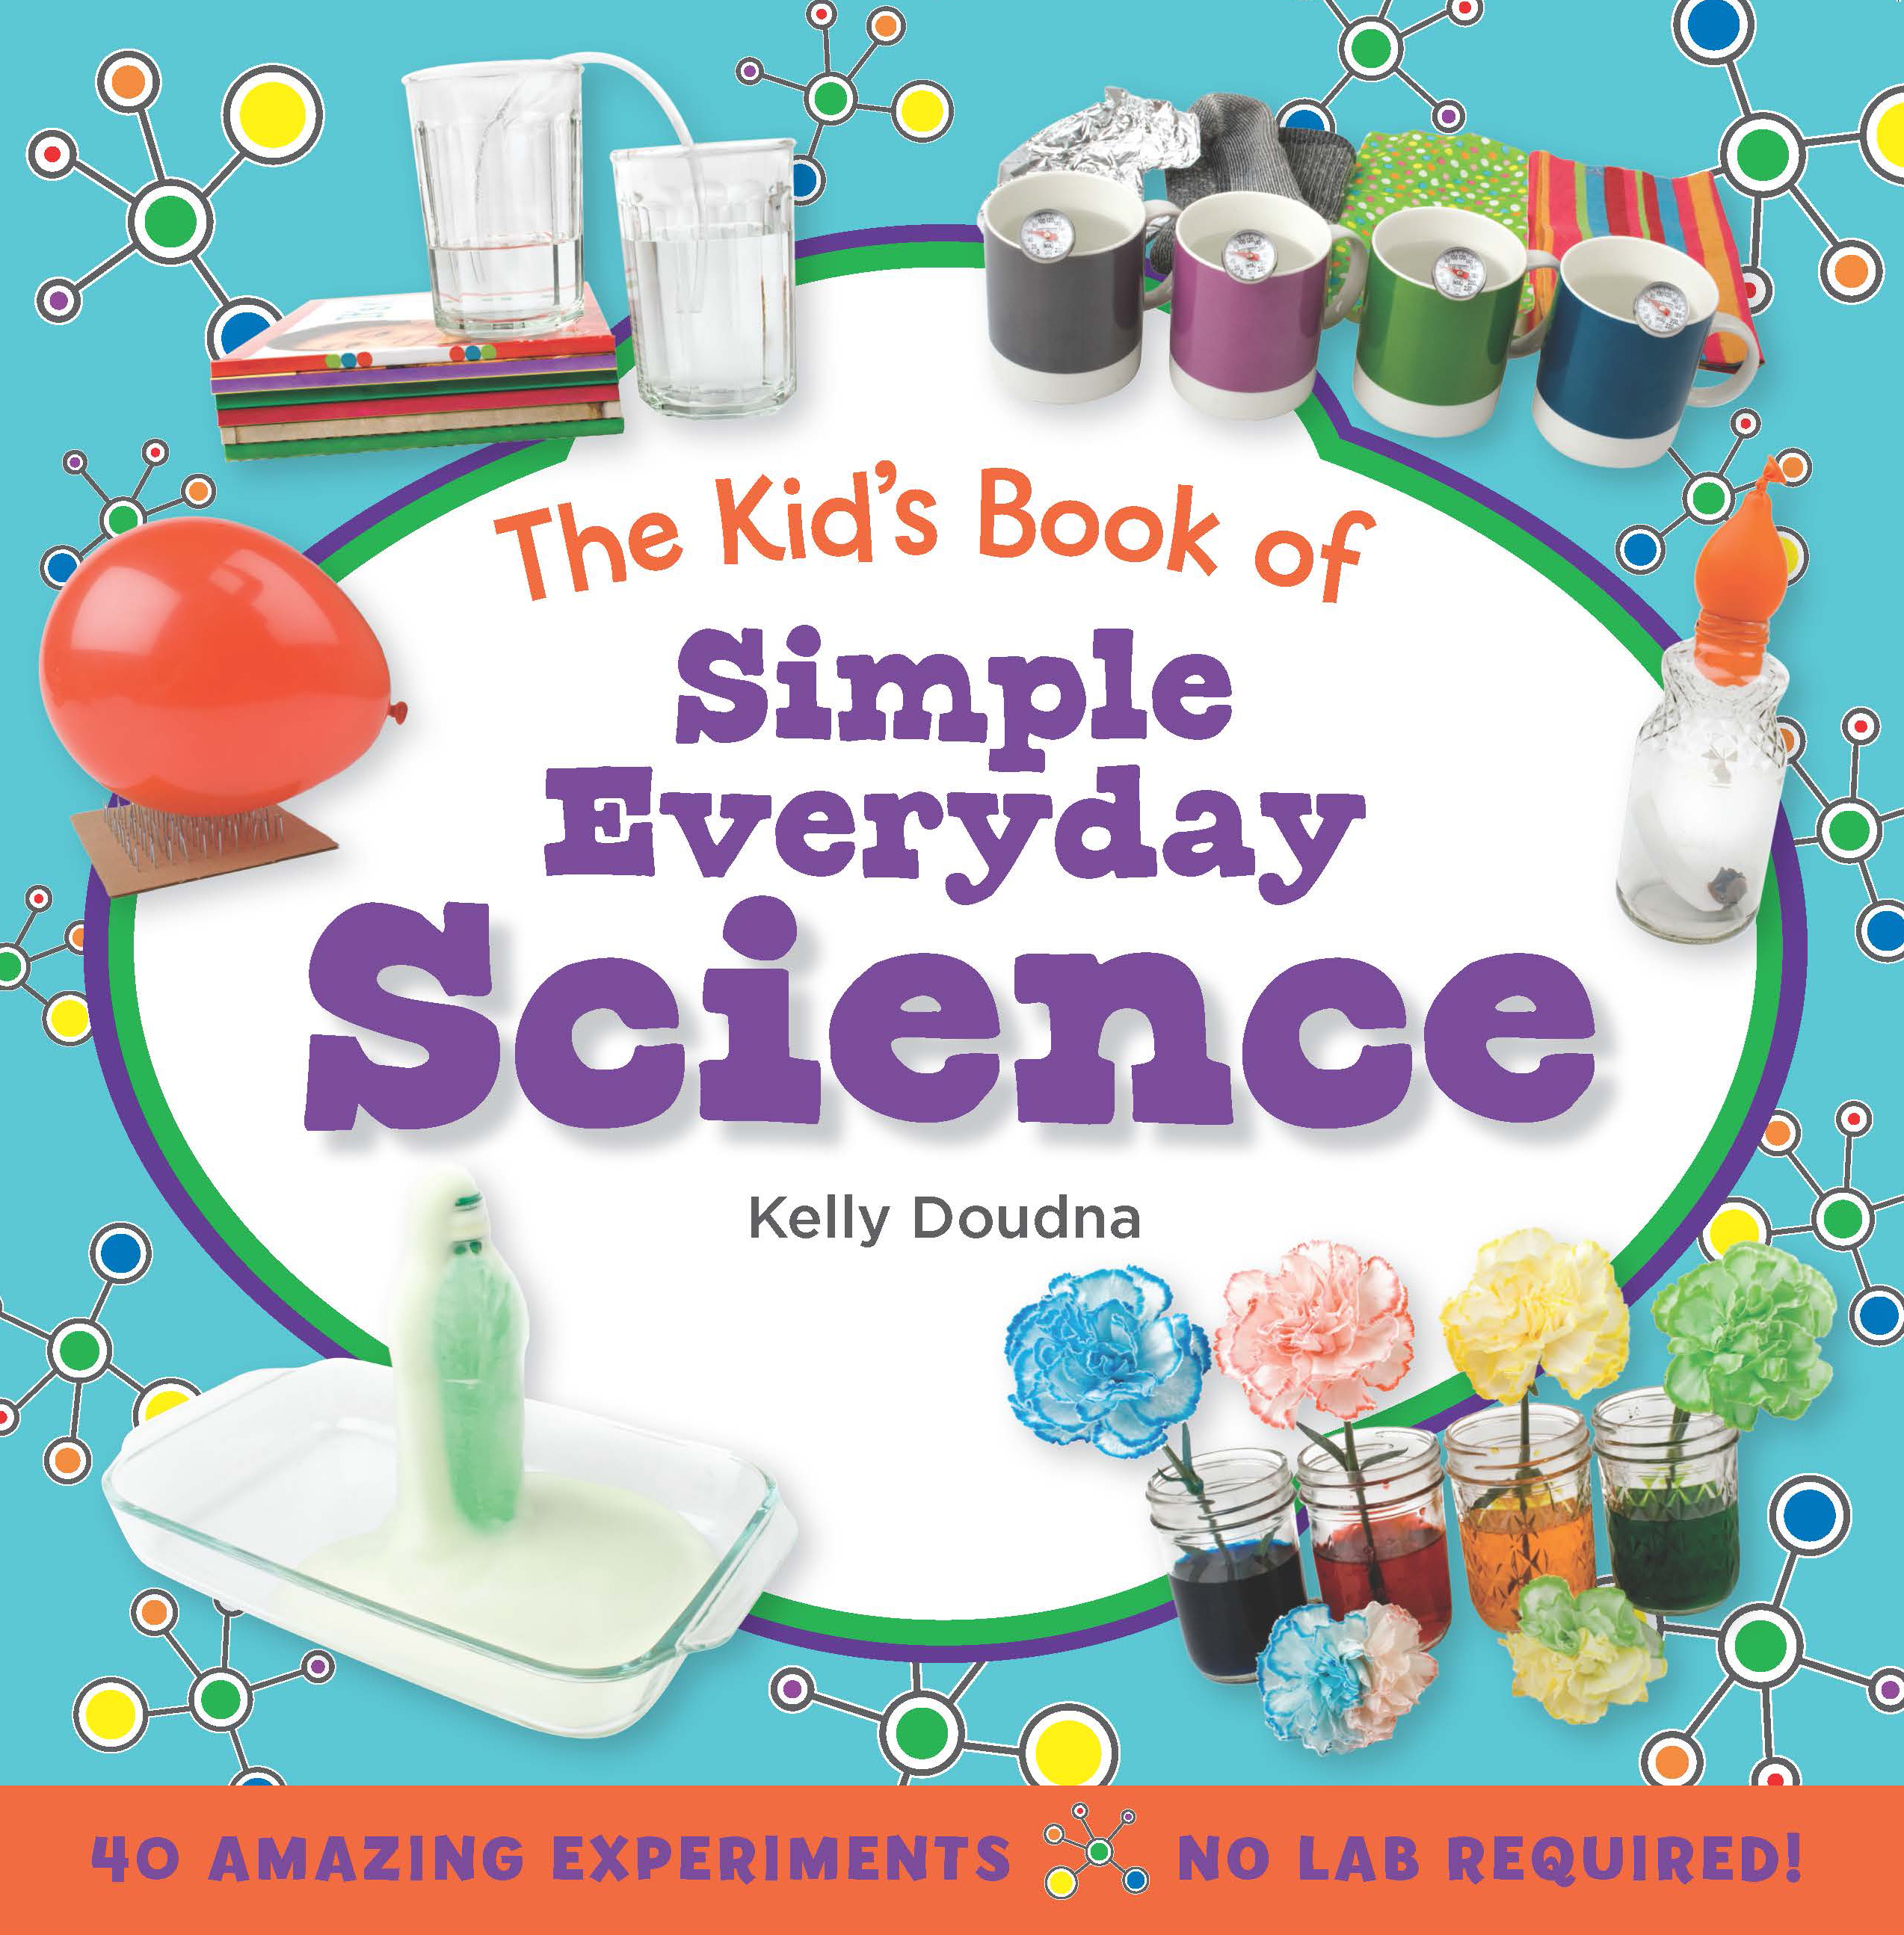 The Kids' Book of Simple Science